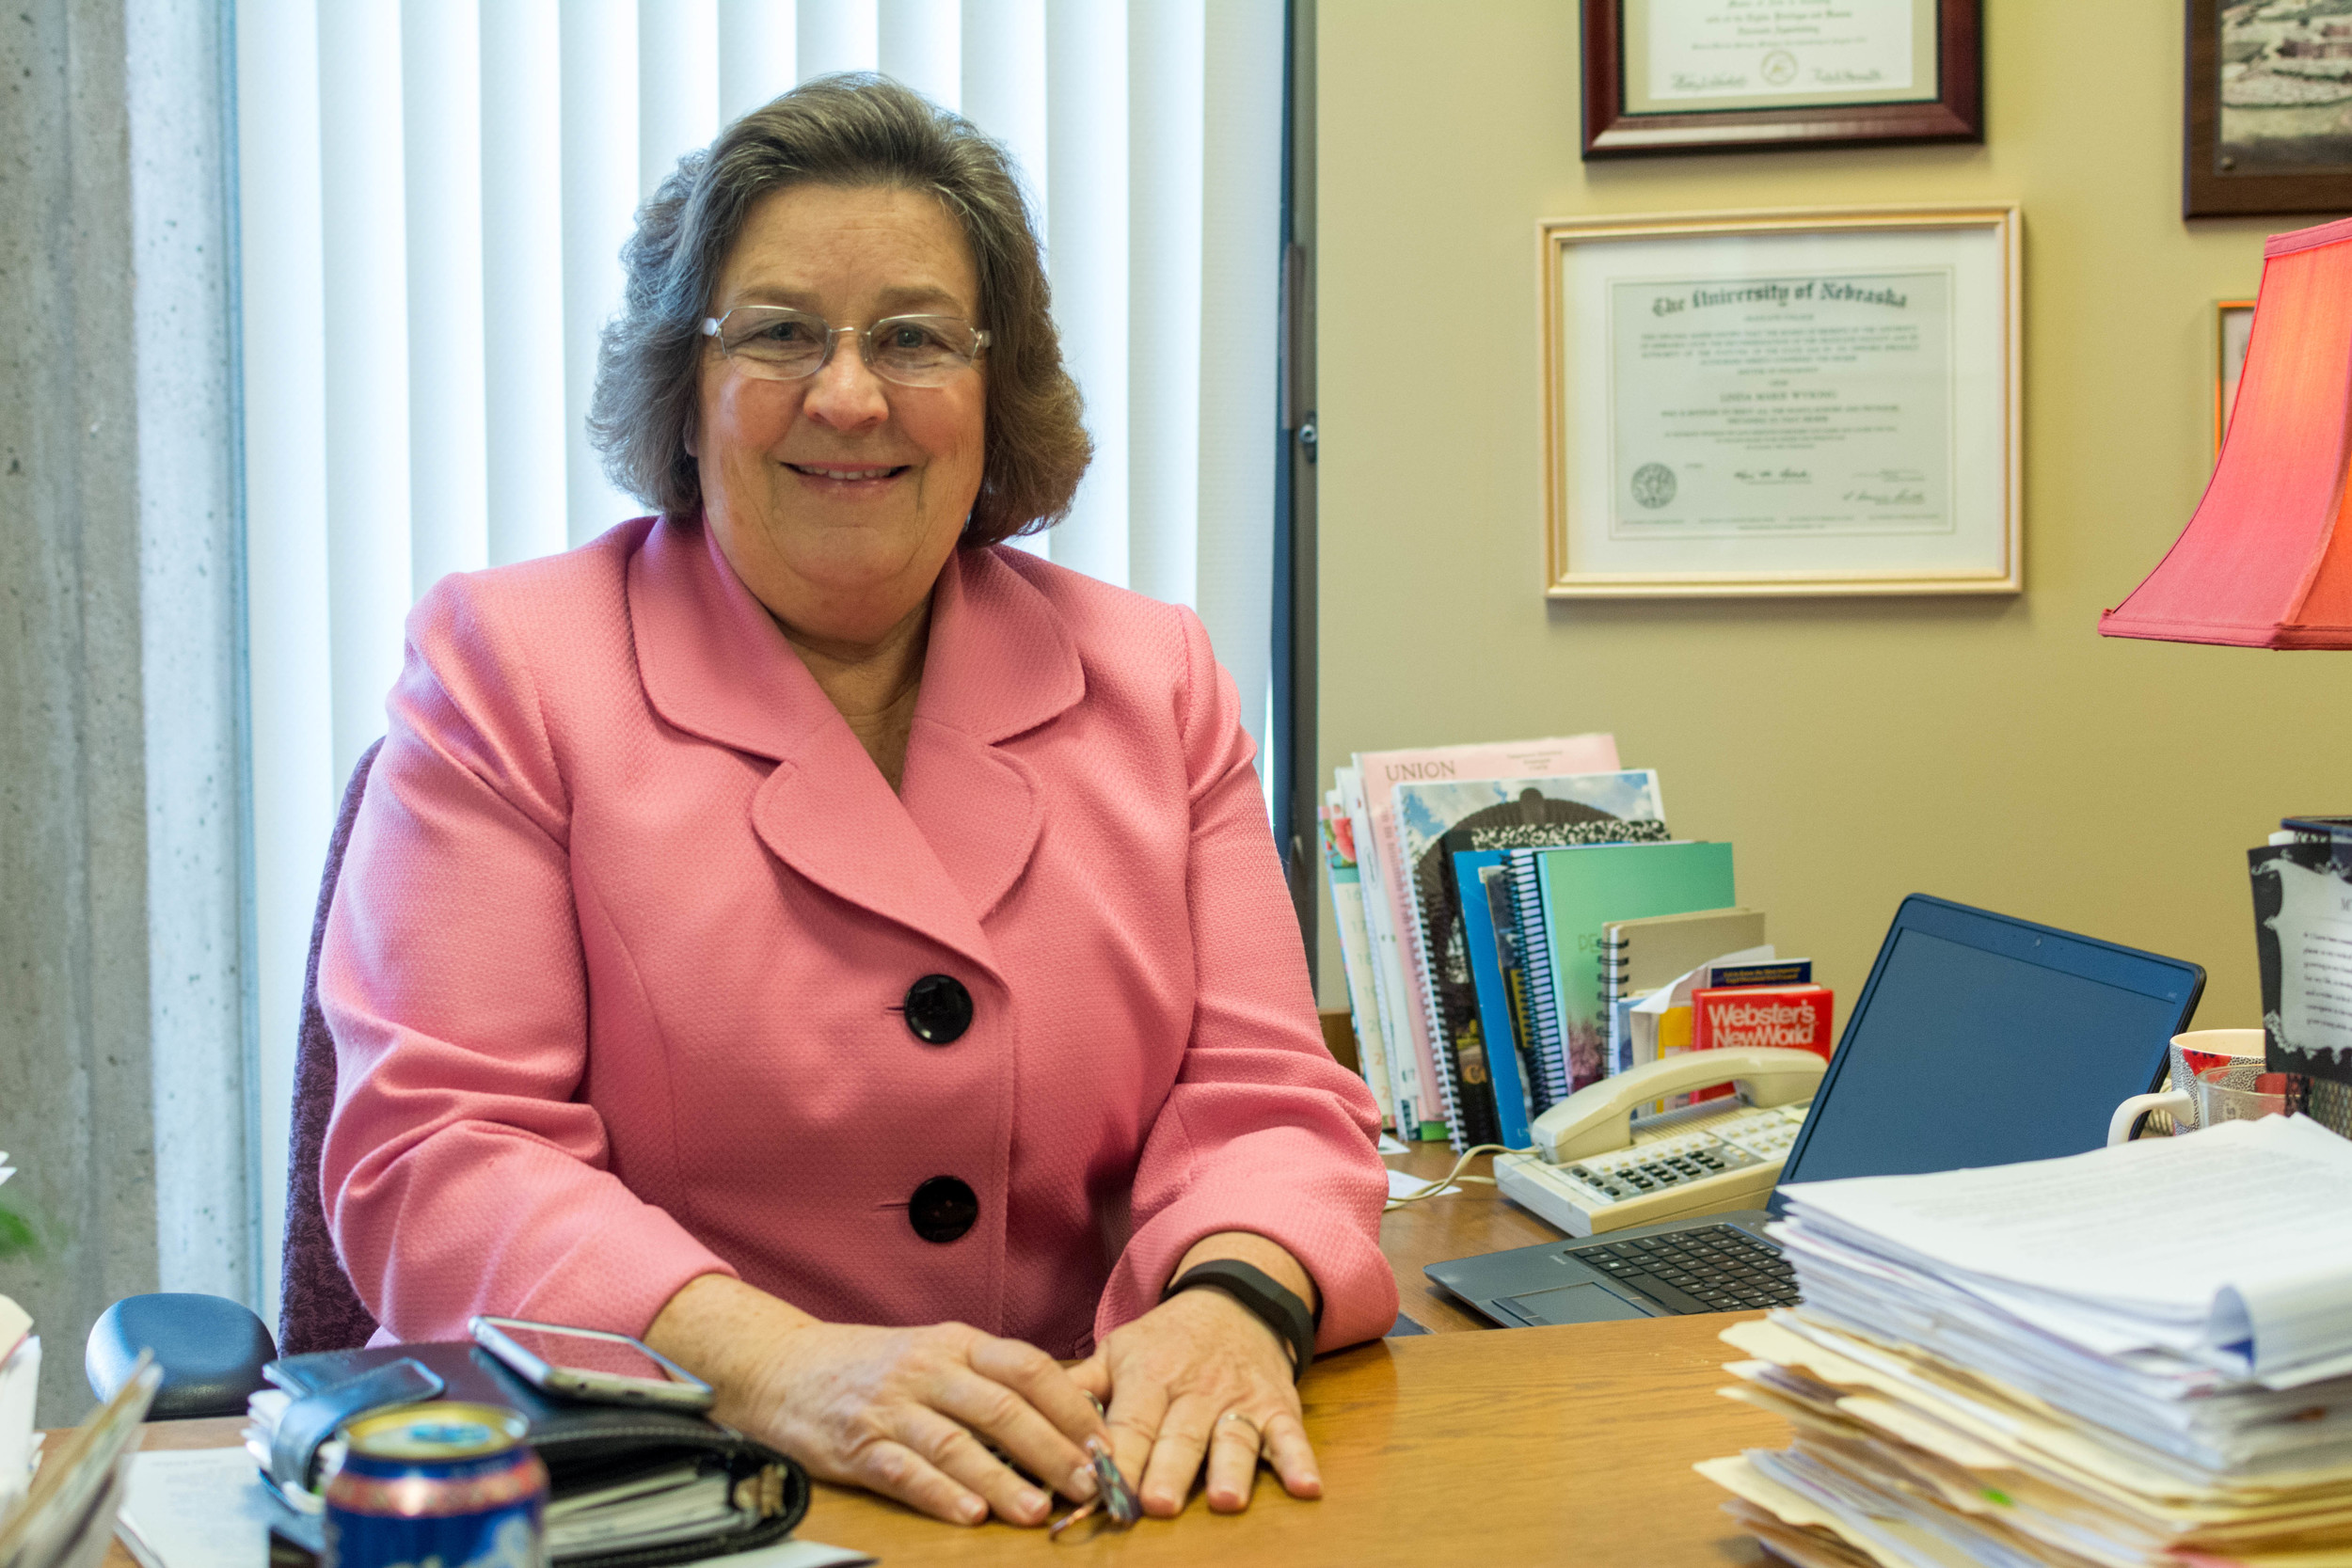 Dr. Becker during her last year as the VP for Student Services // Zach Morrison